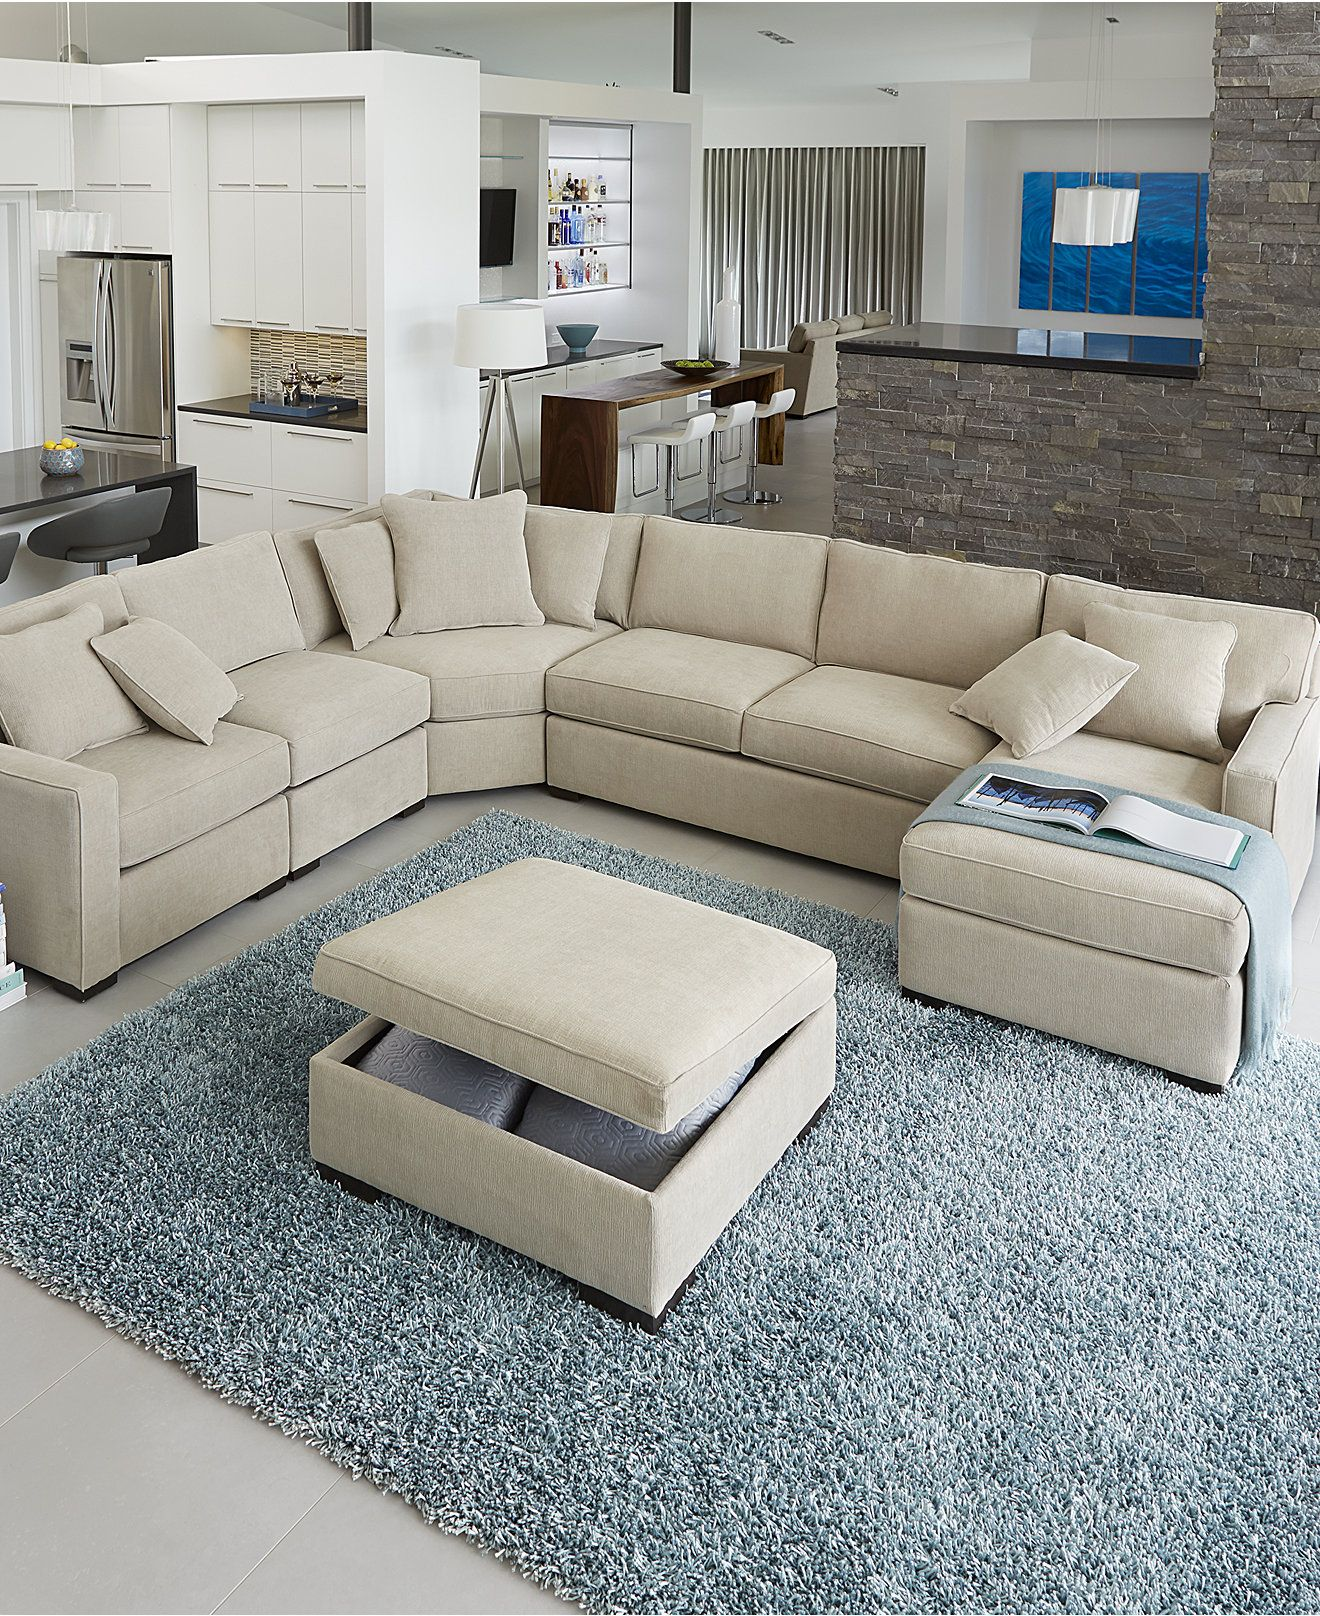 Radley Fabric Sectional Sofa Collection Created for Macy s